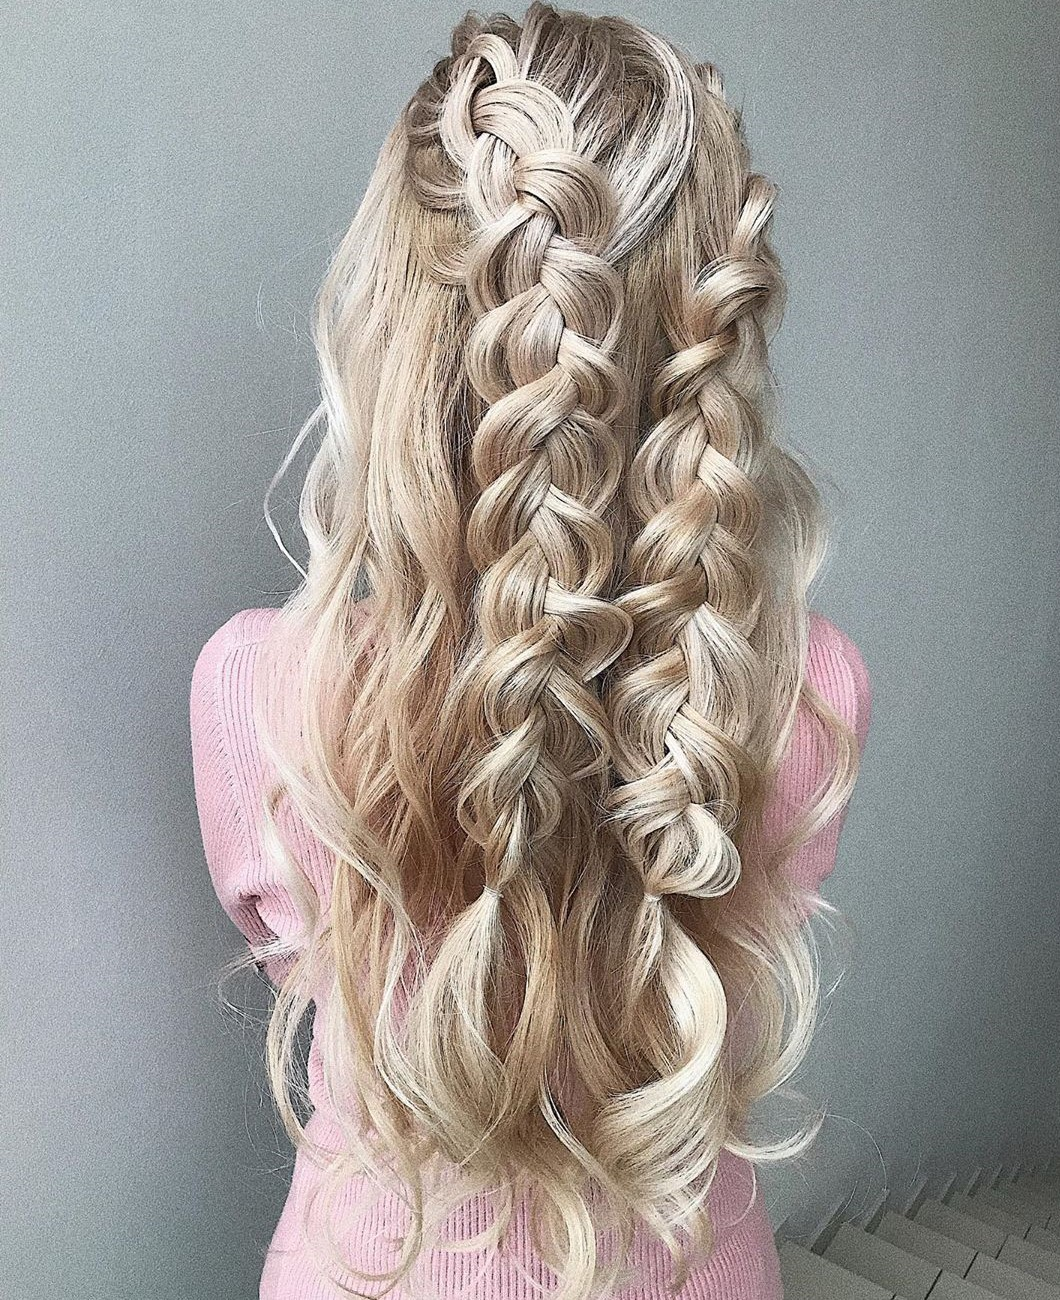 Pretty Braided Half-Up Half-Down Hair